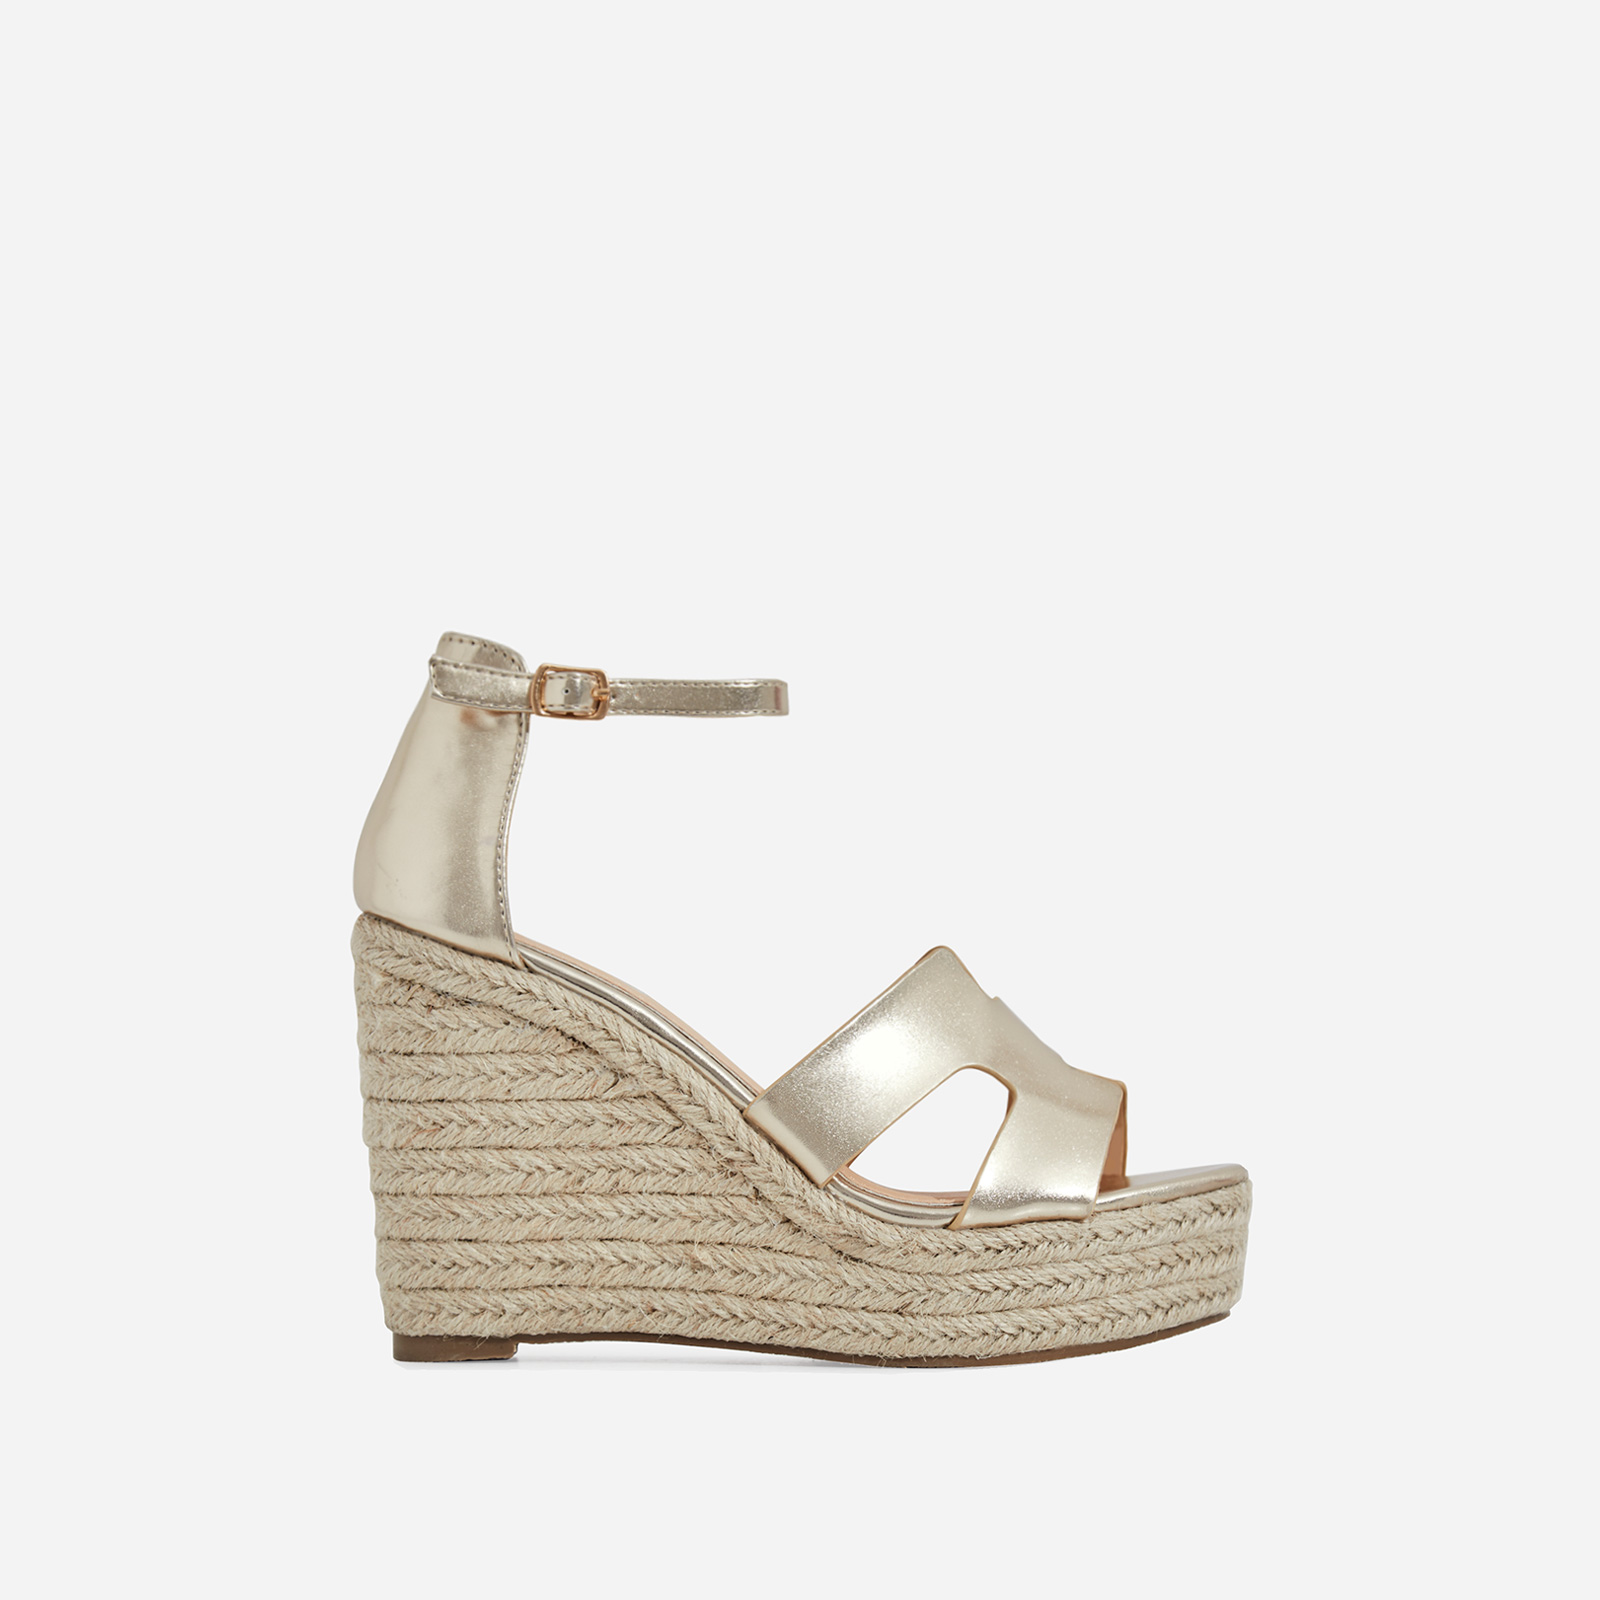 Kayson Platform Espadrille Wedge Block Heel In Gold Faux Leather